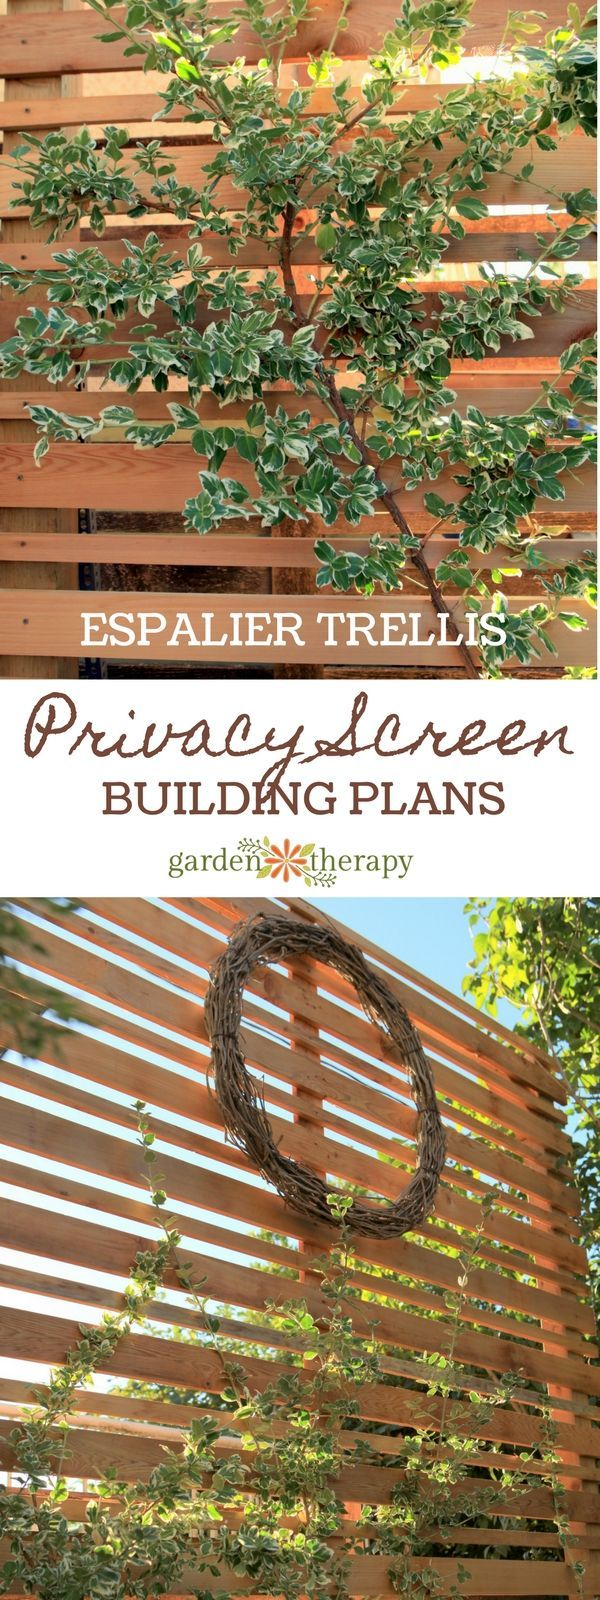 French tuteur trellis woodworking projects amp plans - A Diy Espalier Privacy Screen For The Backyard